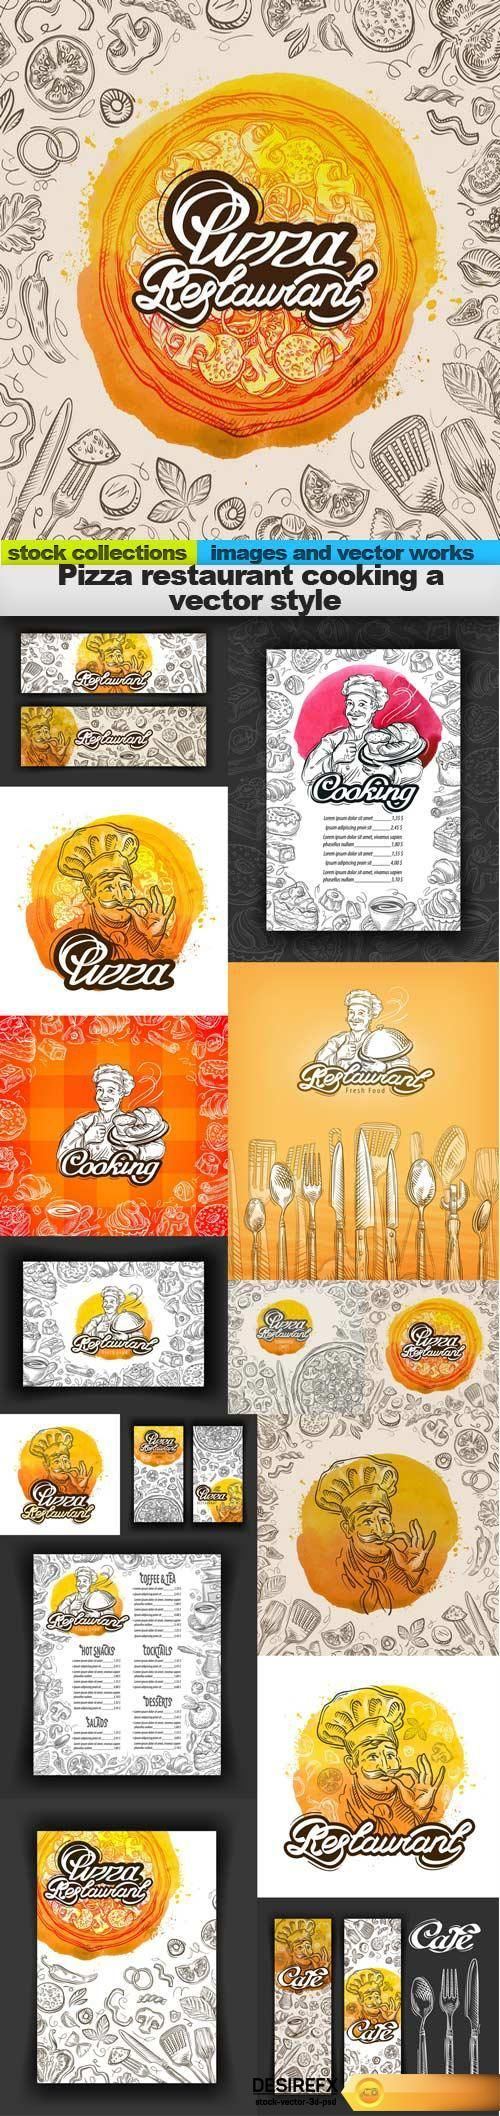 Find your Grapfix Desire With US http://www.desirefx.me/pizza-restaurant-cooking-a-vector-style-15-x-eps/